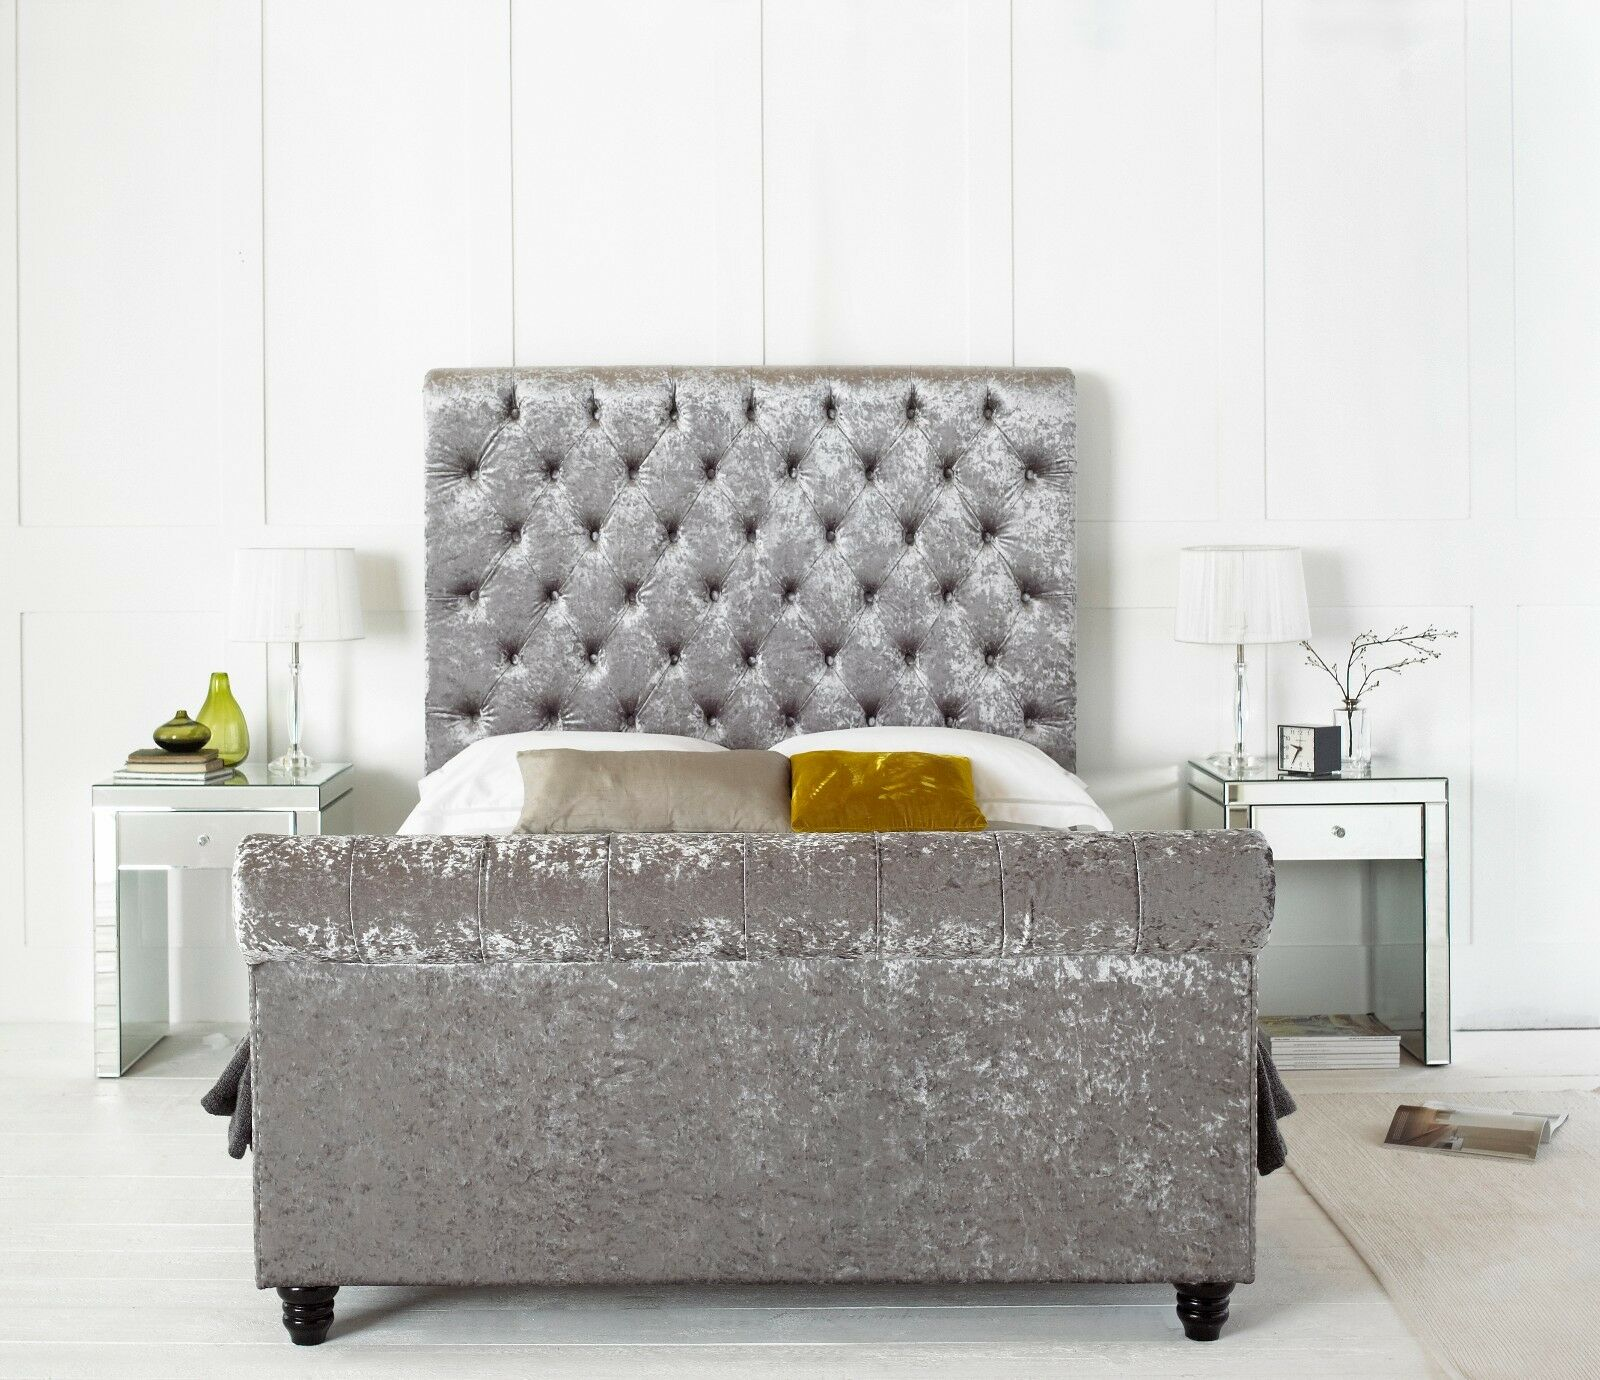 grey upholstered sleigh bed. Majestic Crushed Velvet Chesterfield Upholstered Sleigh Bed Frame 5FT King Size Grey